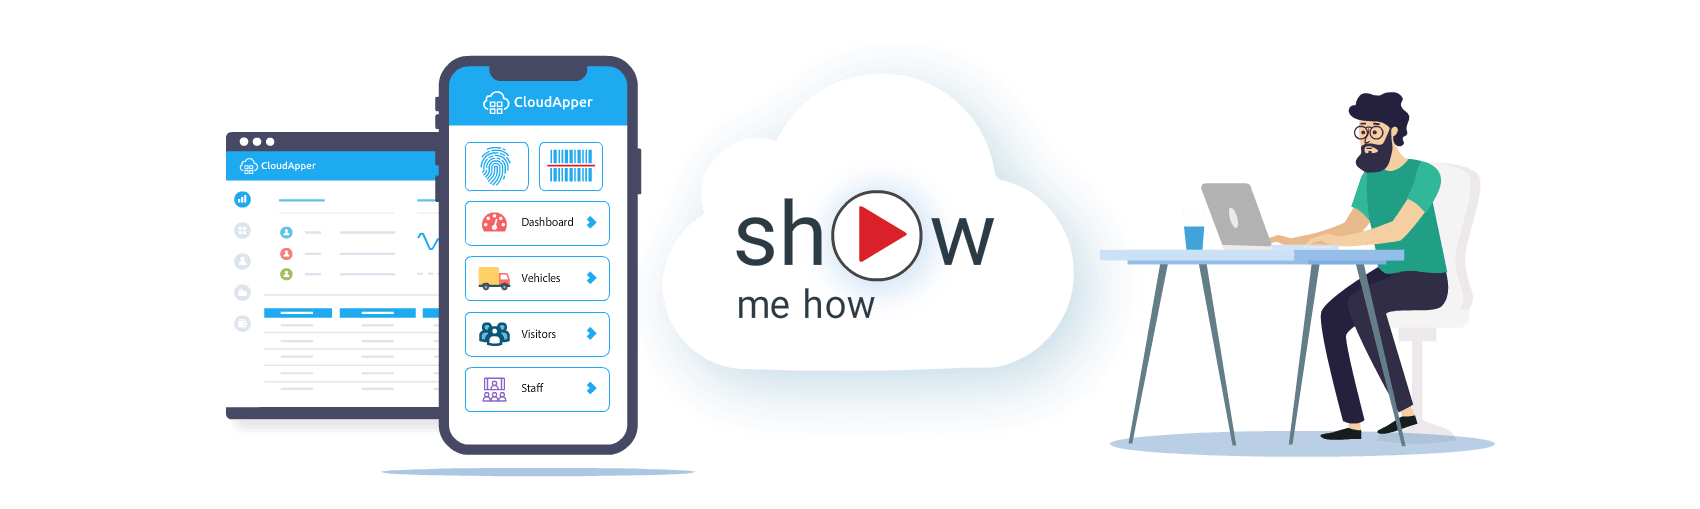 promo-video-show_me_how_cloudapper-kernello